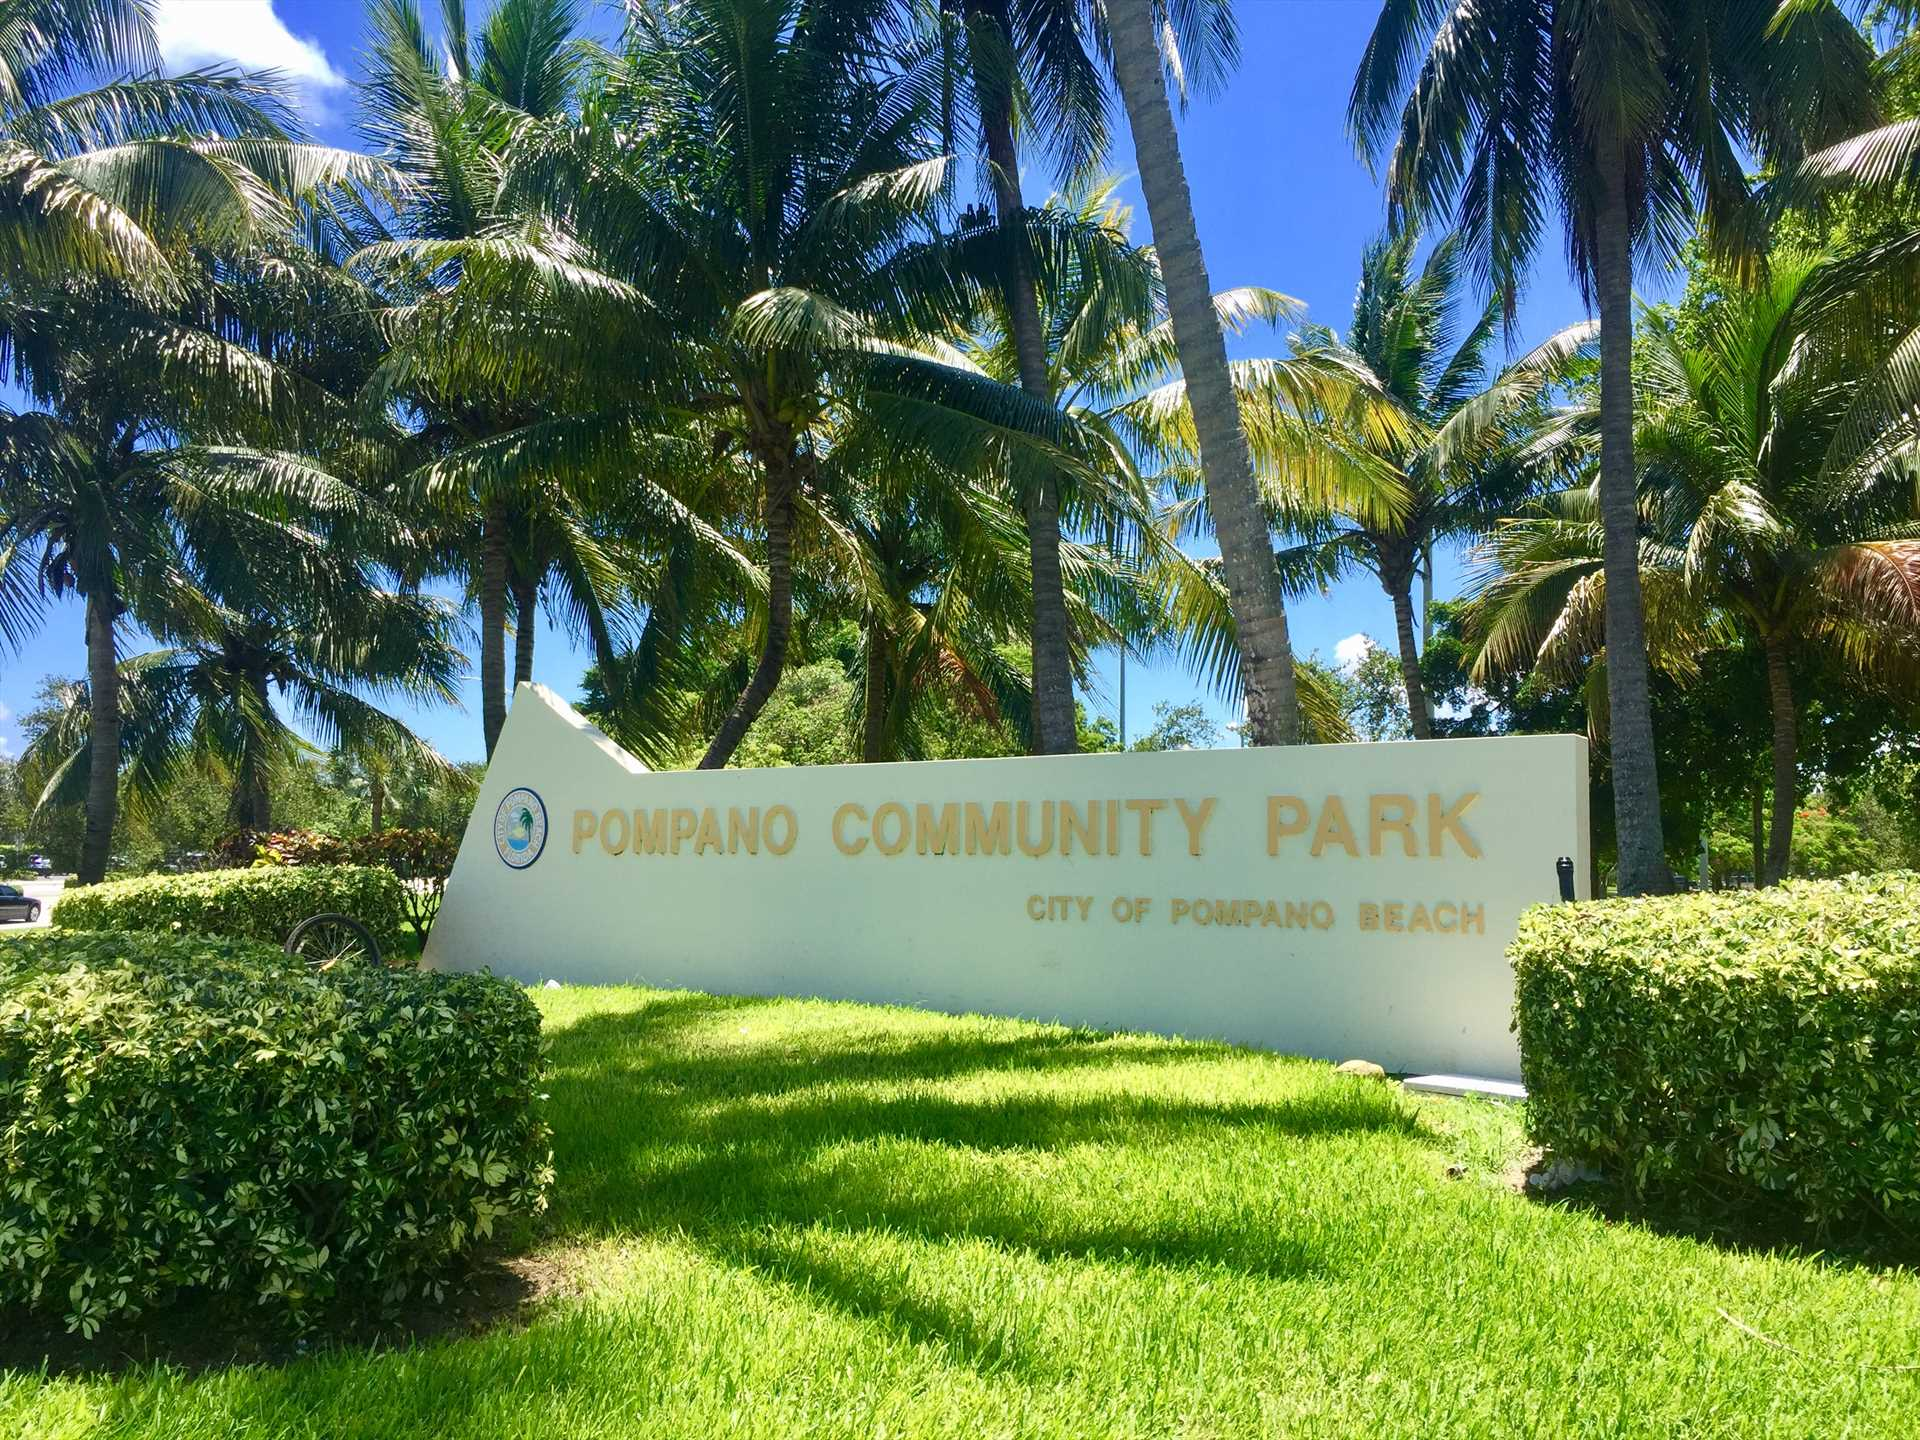 Pompano Community Park features basketball, volley ball and